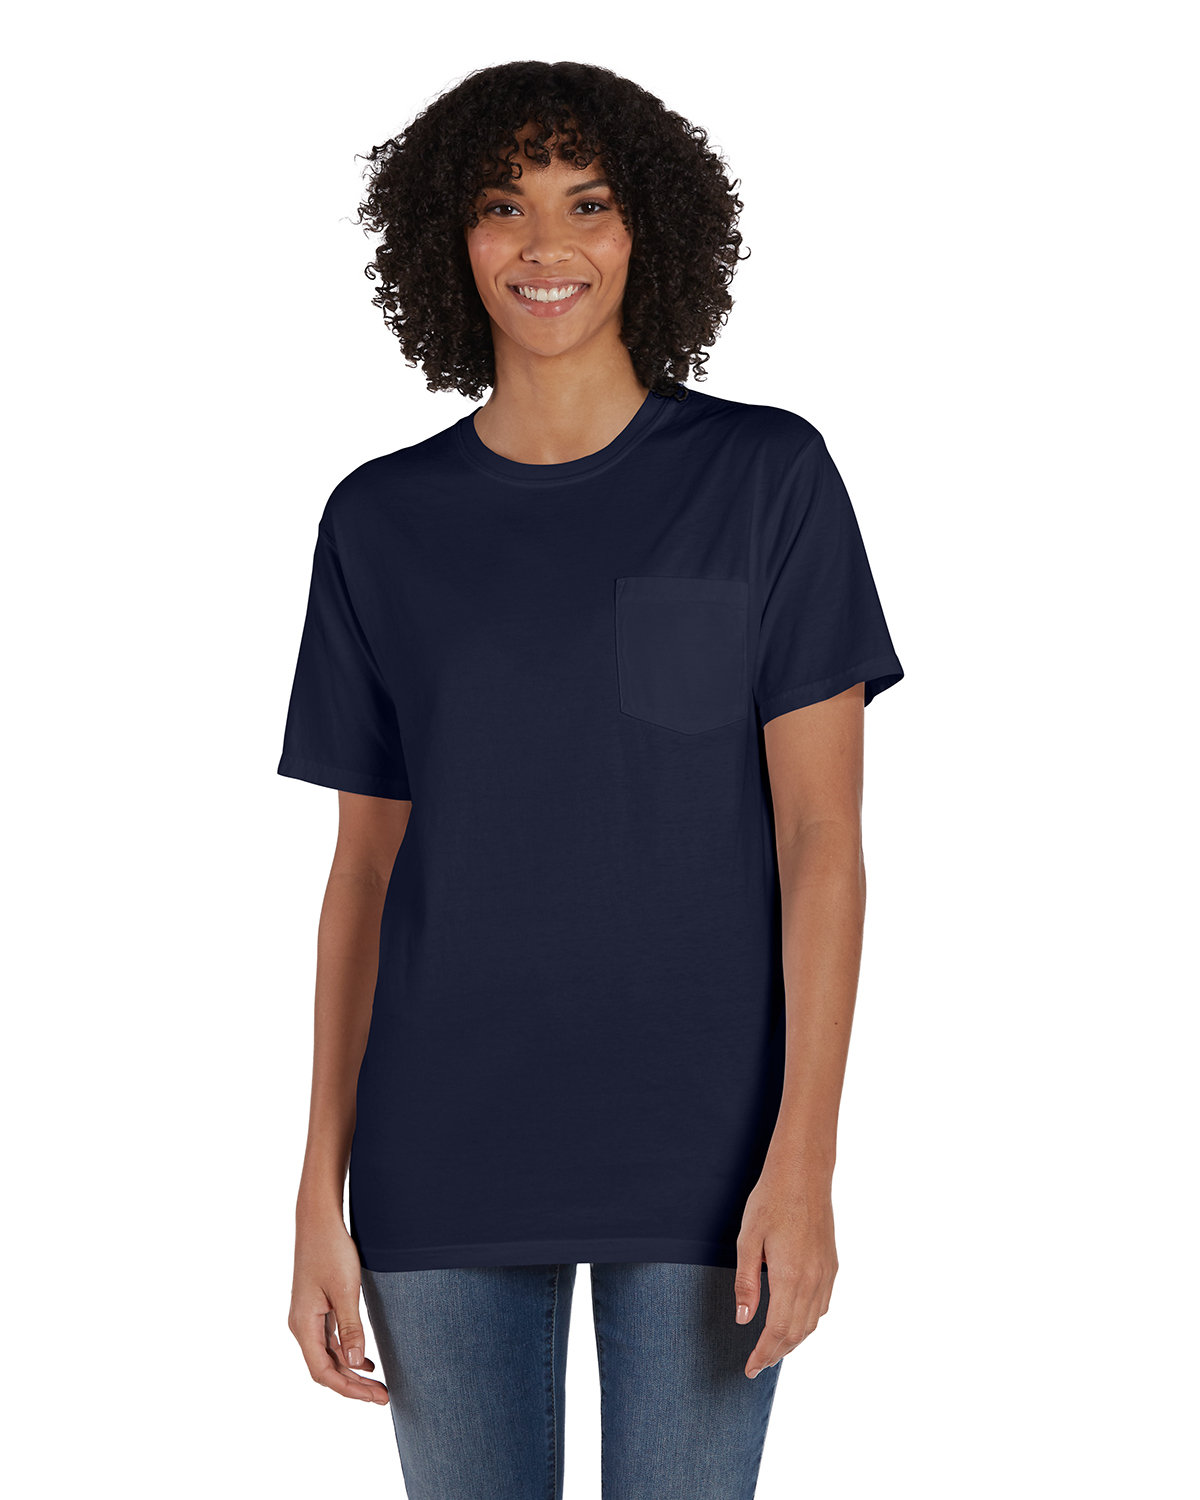 ComfortWash by Hanes Unisex 5.5 oz., 100% Ringspun Cotton Garment-Dyed T-Shirt with Pocket NAVY